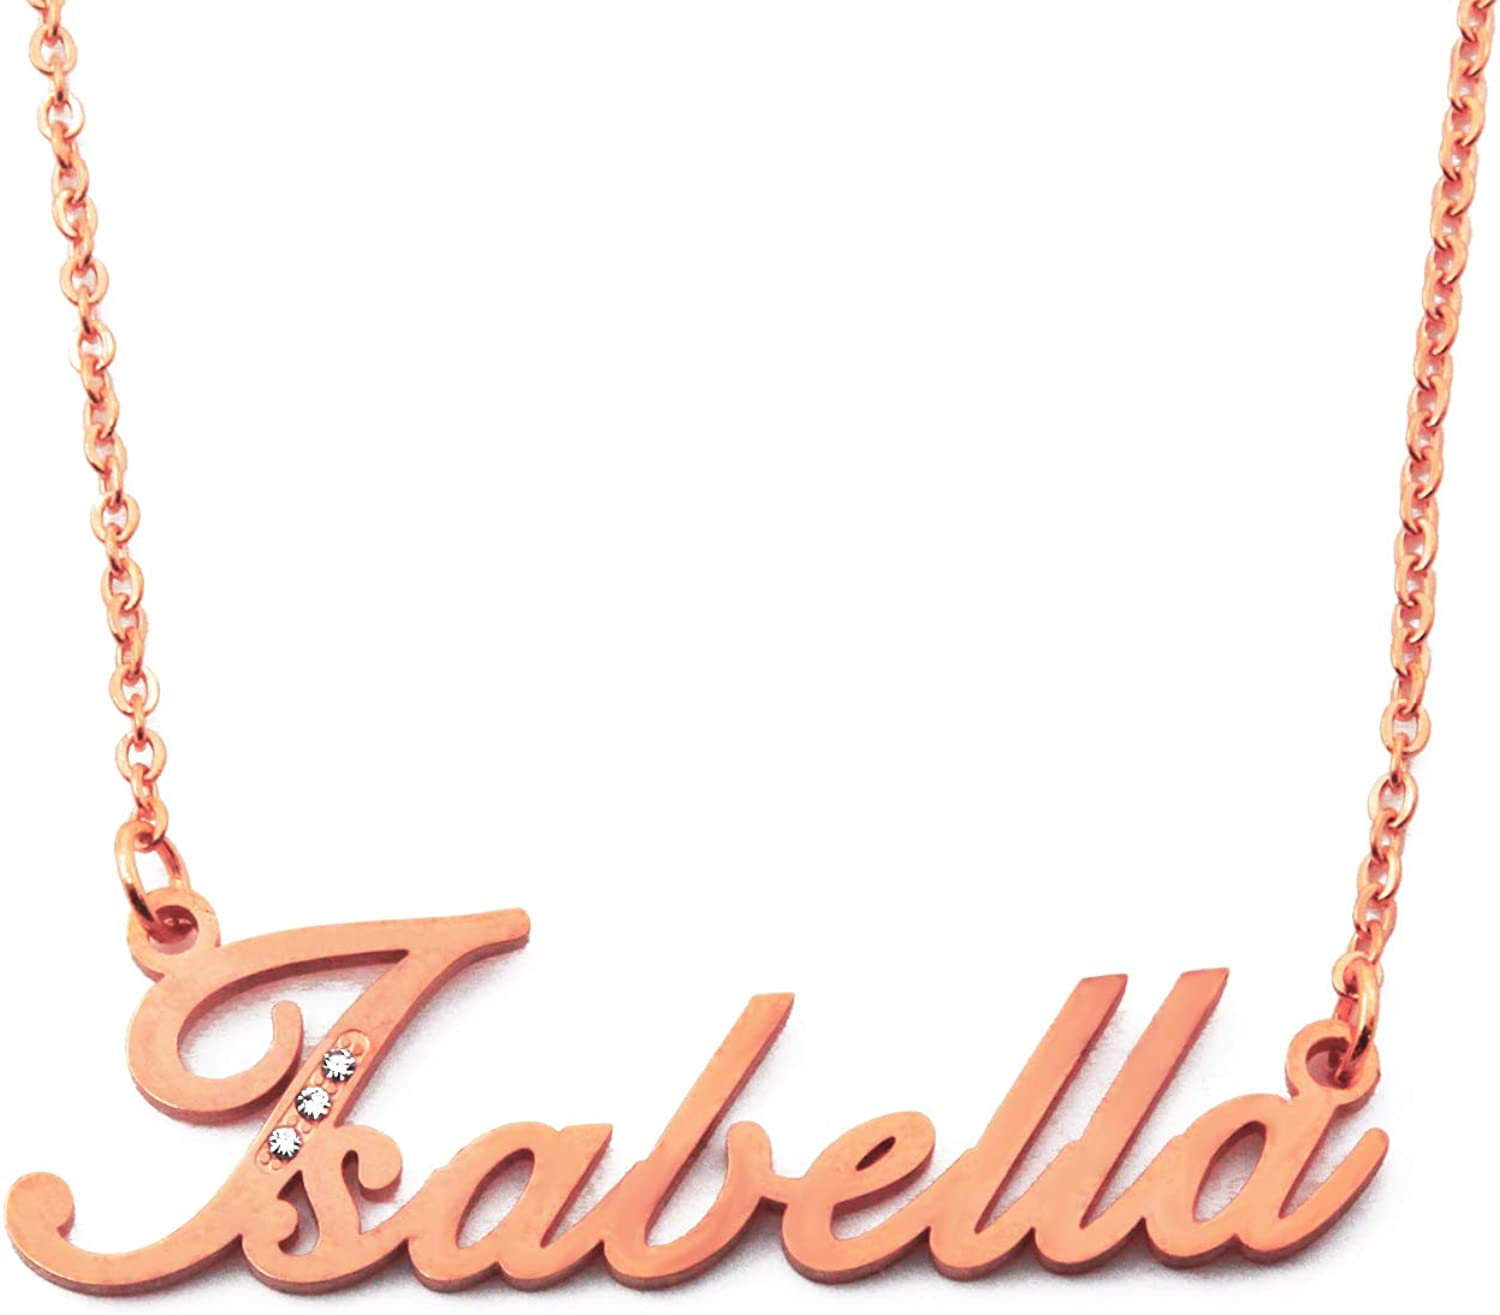 Crystals Kigu Italic Name Necklace Isabella 18ct Rose Gold Plated Incl